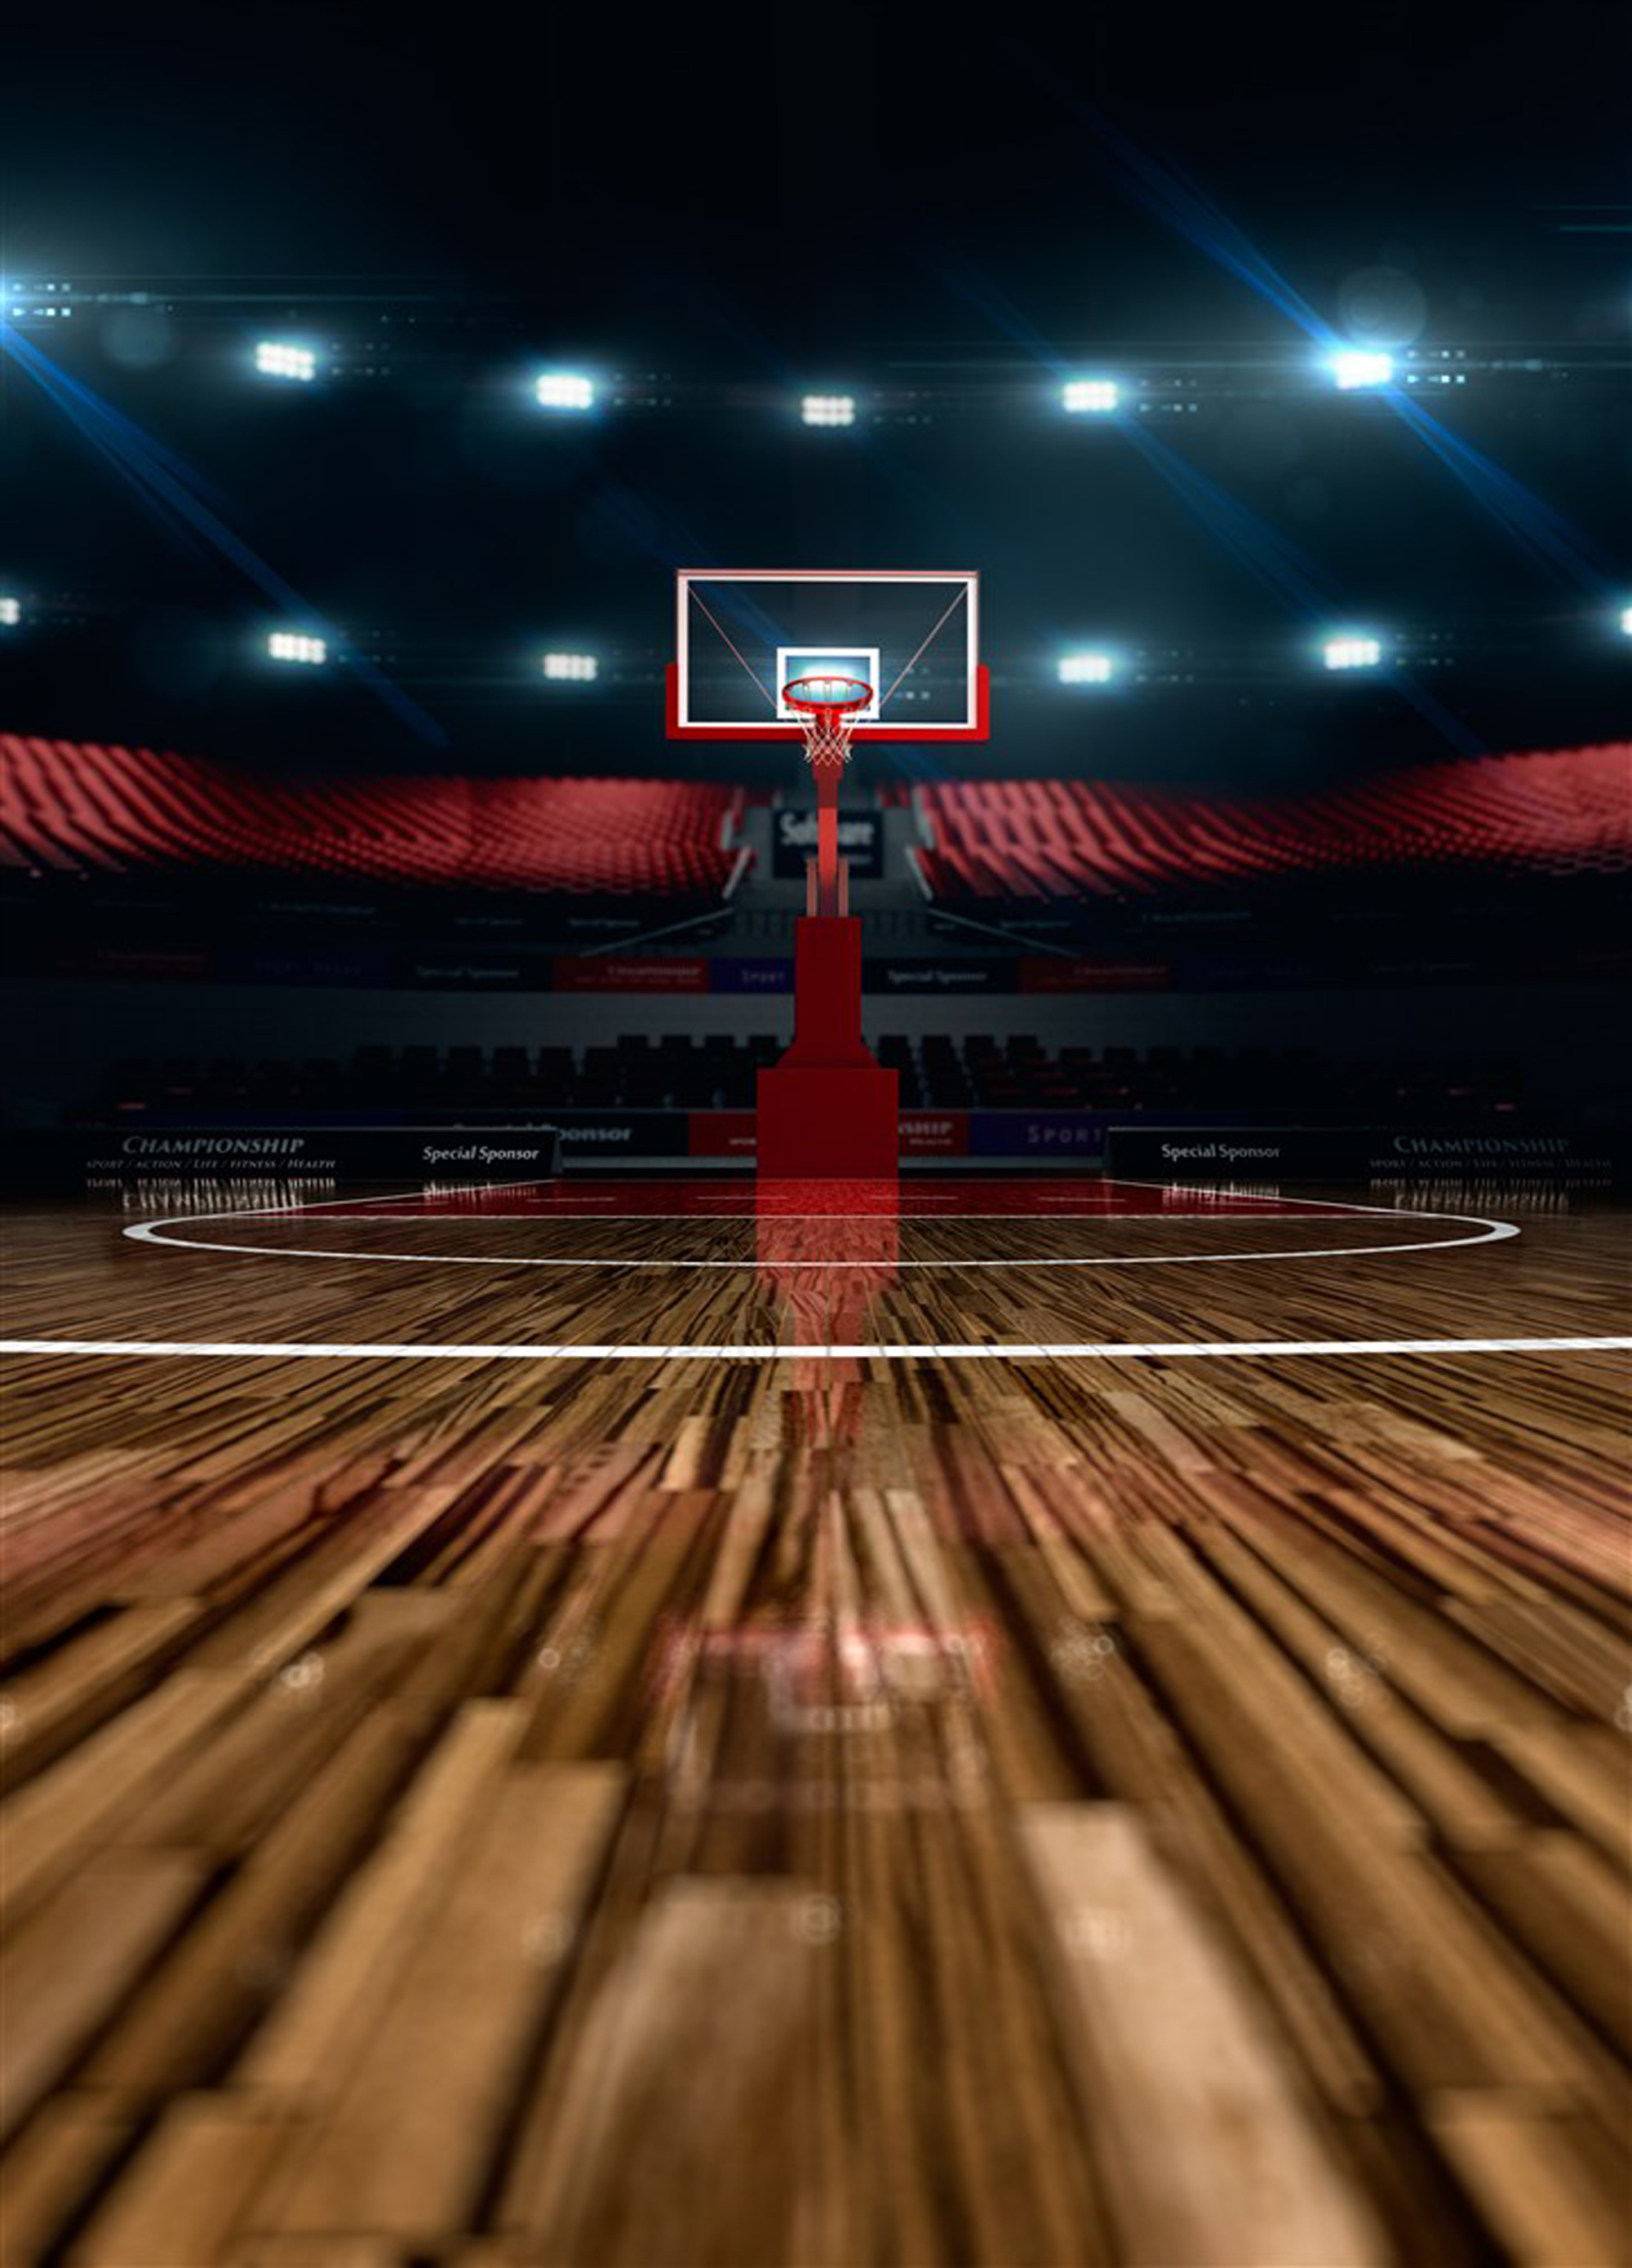 Cool Wallpapers For Boys Of Money And Cars Highgrade Highdefinition Picture Basketball Court Light